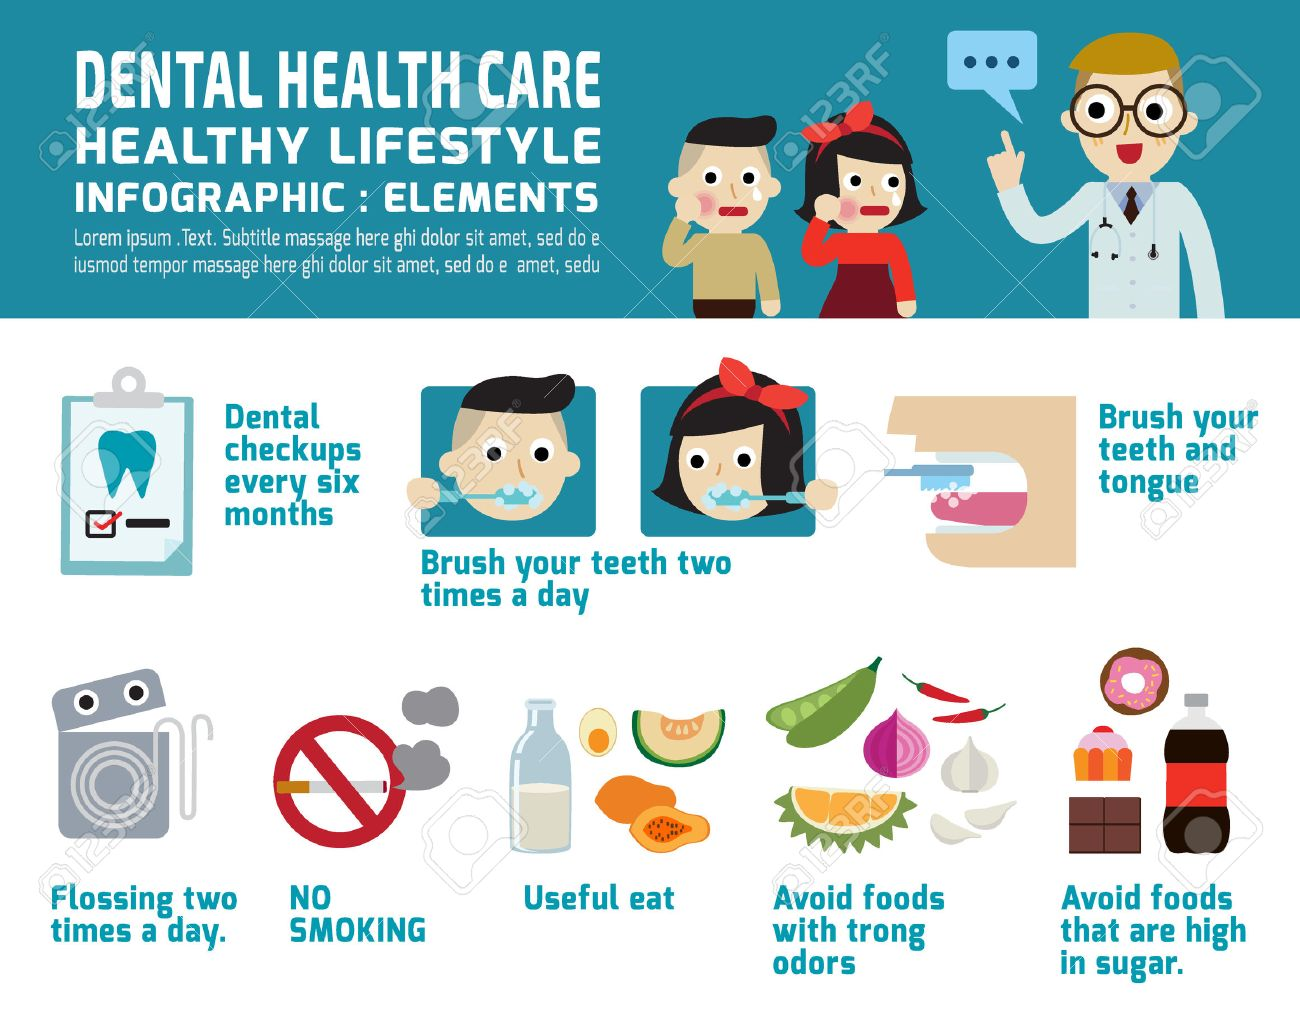 51917637-dental-health-care-infographic-